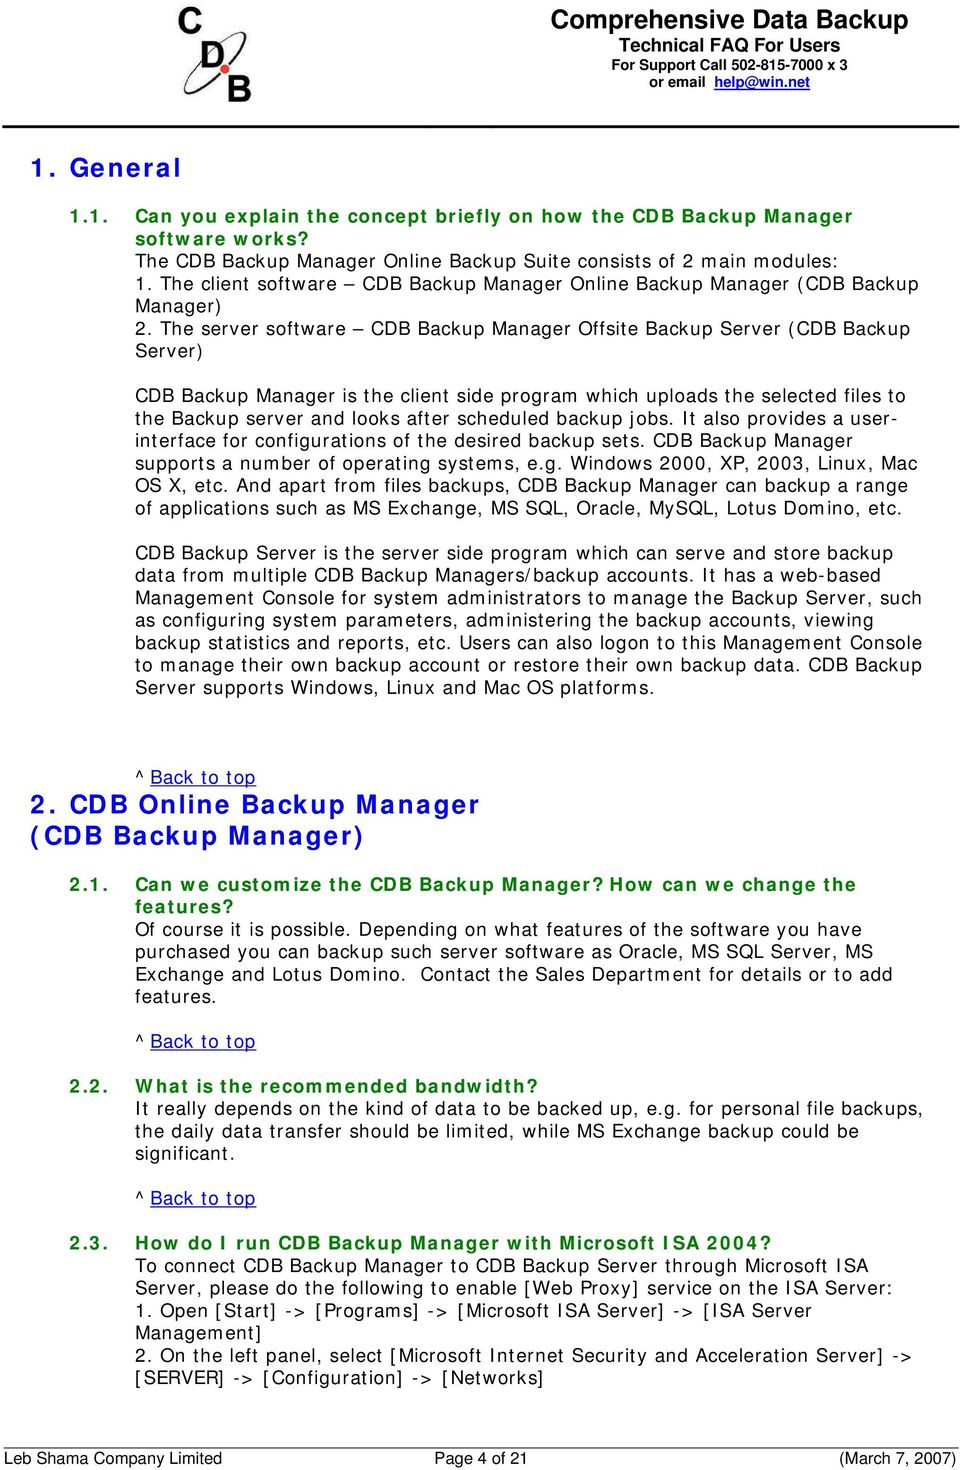 The server software CDB Backup Manager Offsite Backup Server (CDB Backup Server) CDB Backup Manager is the client side program which uploads the selected files to the Backup server and looks after